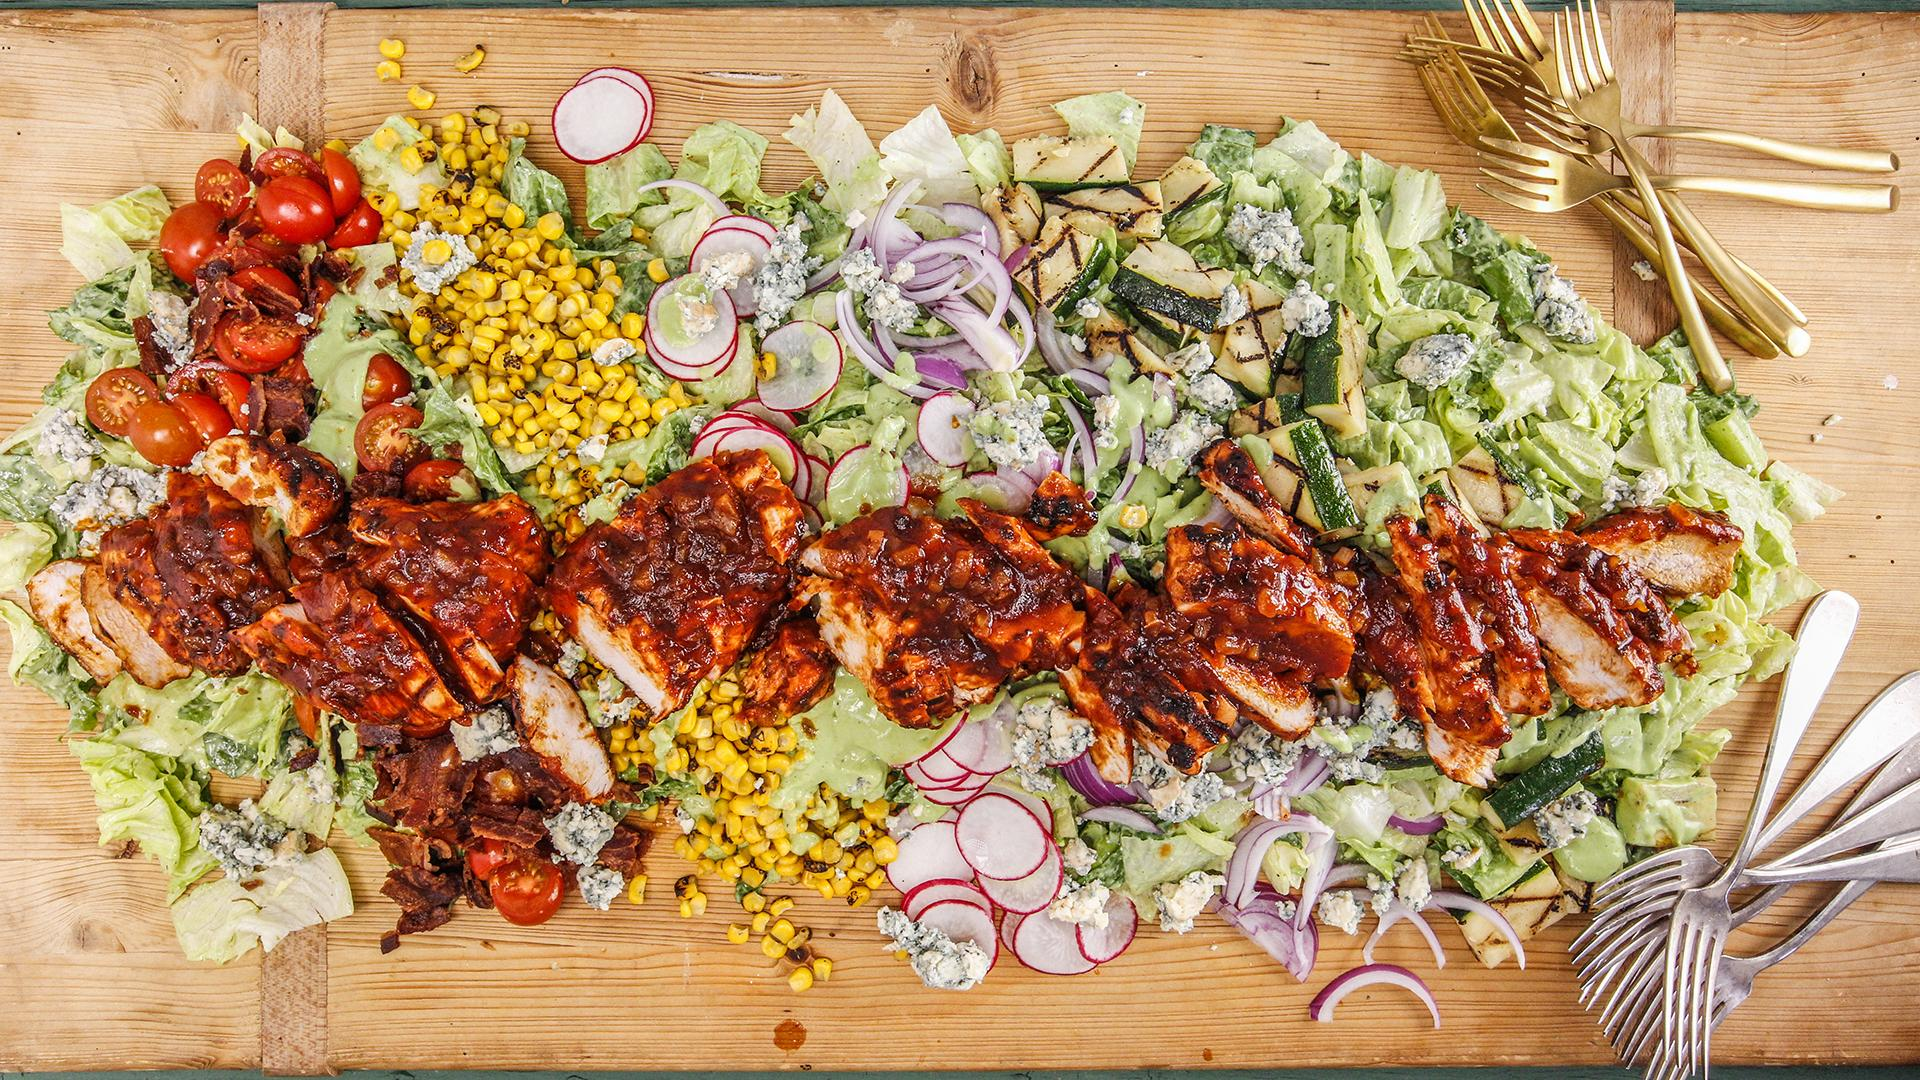 Statement Salad Rachaels Chipotle Chicken Cobb with Avocado 1920x1080